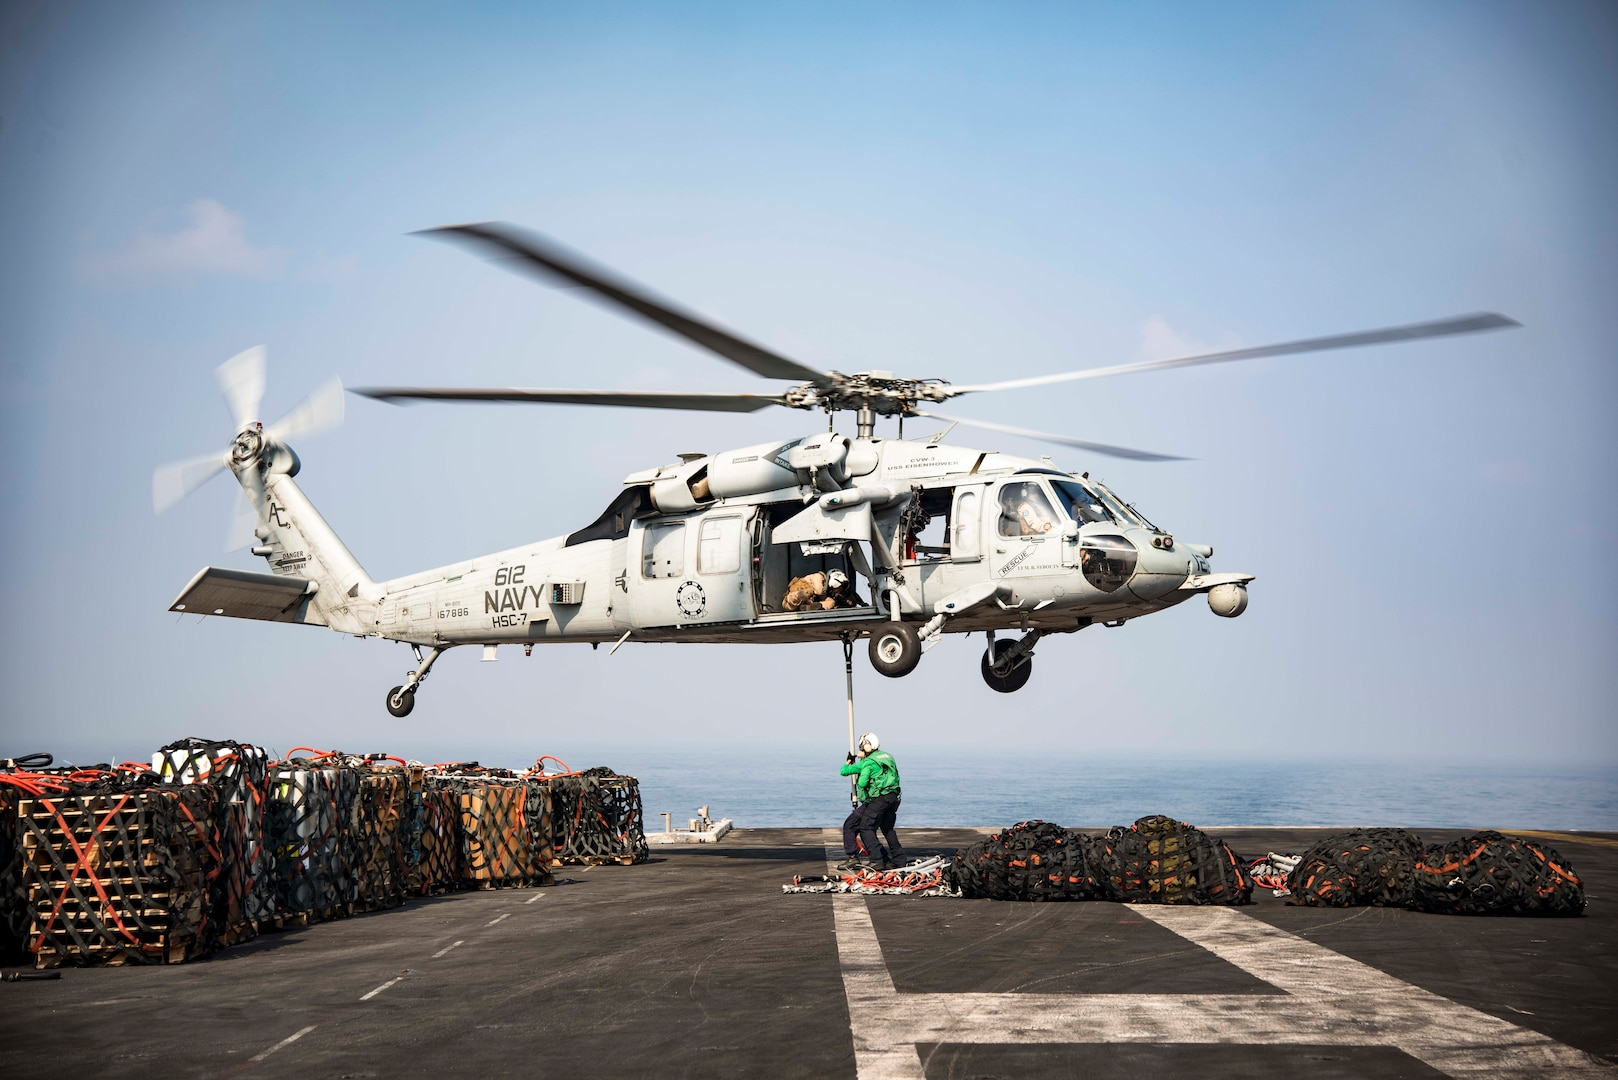 161021-N-BH414-247  ARABIAN GULF (Oct. 21, 2016) An MH-60S Sea Hawk helicopter assigned to the Dusty Dogs of Helicopter Sea Combat Squadron (HSC) 7 picks up cargo nets on the flight deck of the aircraft carrier USS Dwight D. Eisenhower (CVN 69) (Ike) during a replenishment-at-sea with the fleet replenishment oiler USNS Pecos (T-AO 197). Ike and its Carrier Strike Group are deployed in support of Operation Inherent Resolve, maritime security operations and theater security cooperation efforts in the U.S. 5th Fleet area of operations. (U.S. Navy photo by Seaman Casey S. Trietsch)